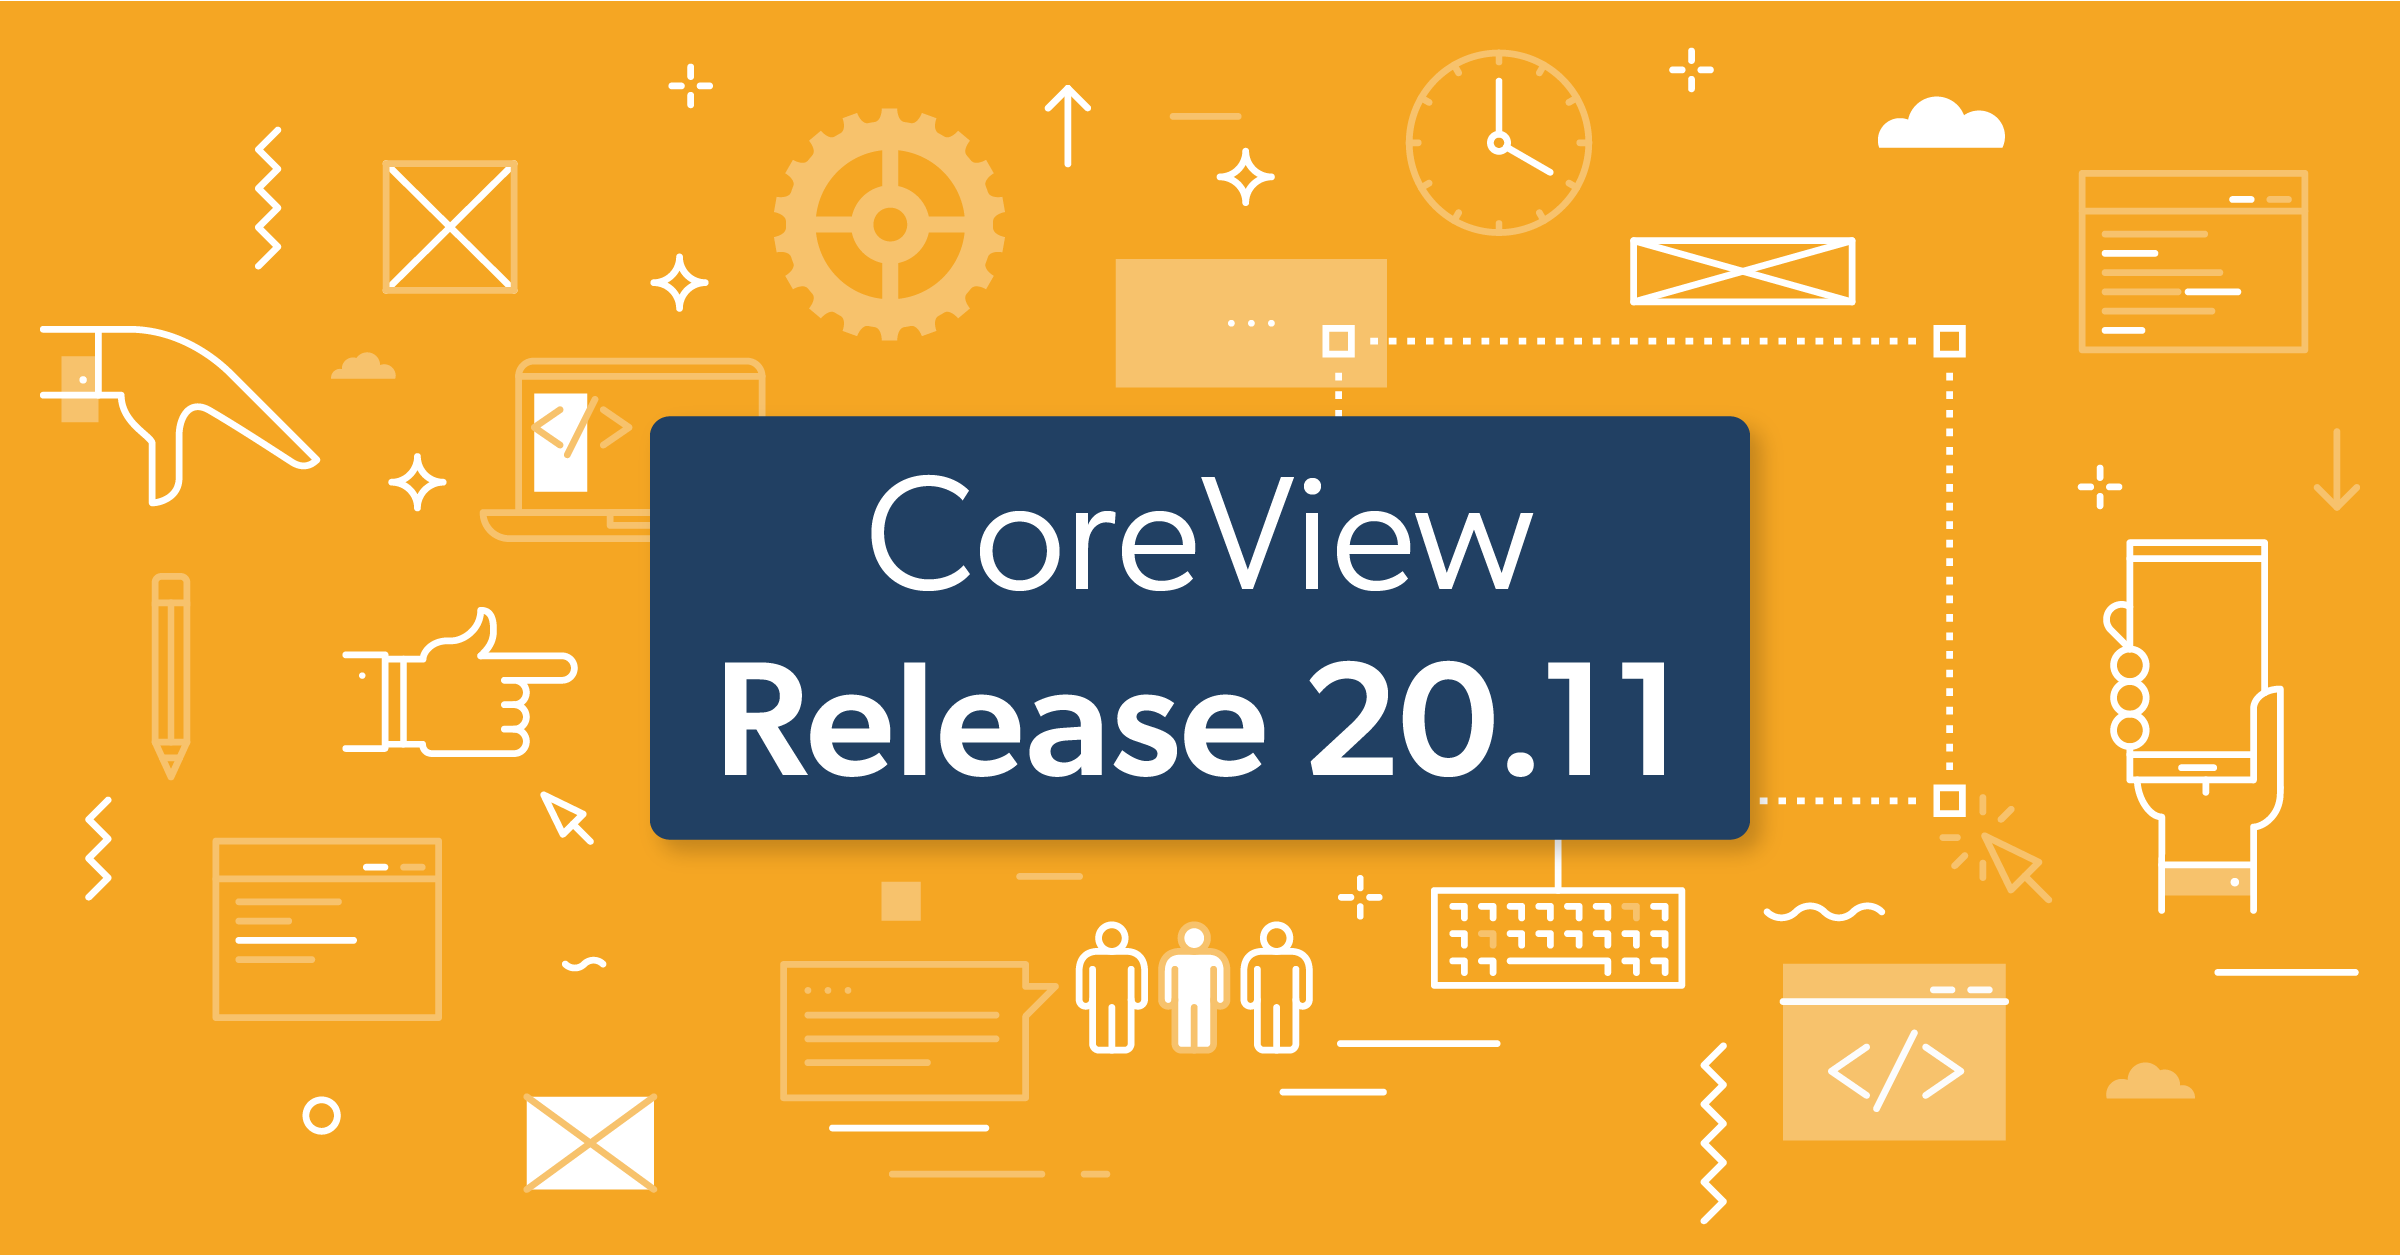 CoreView Release 20.11